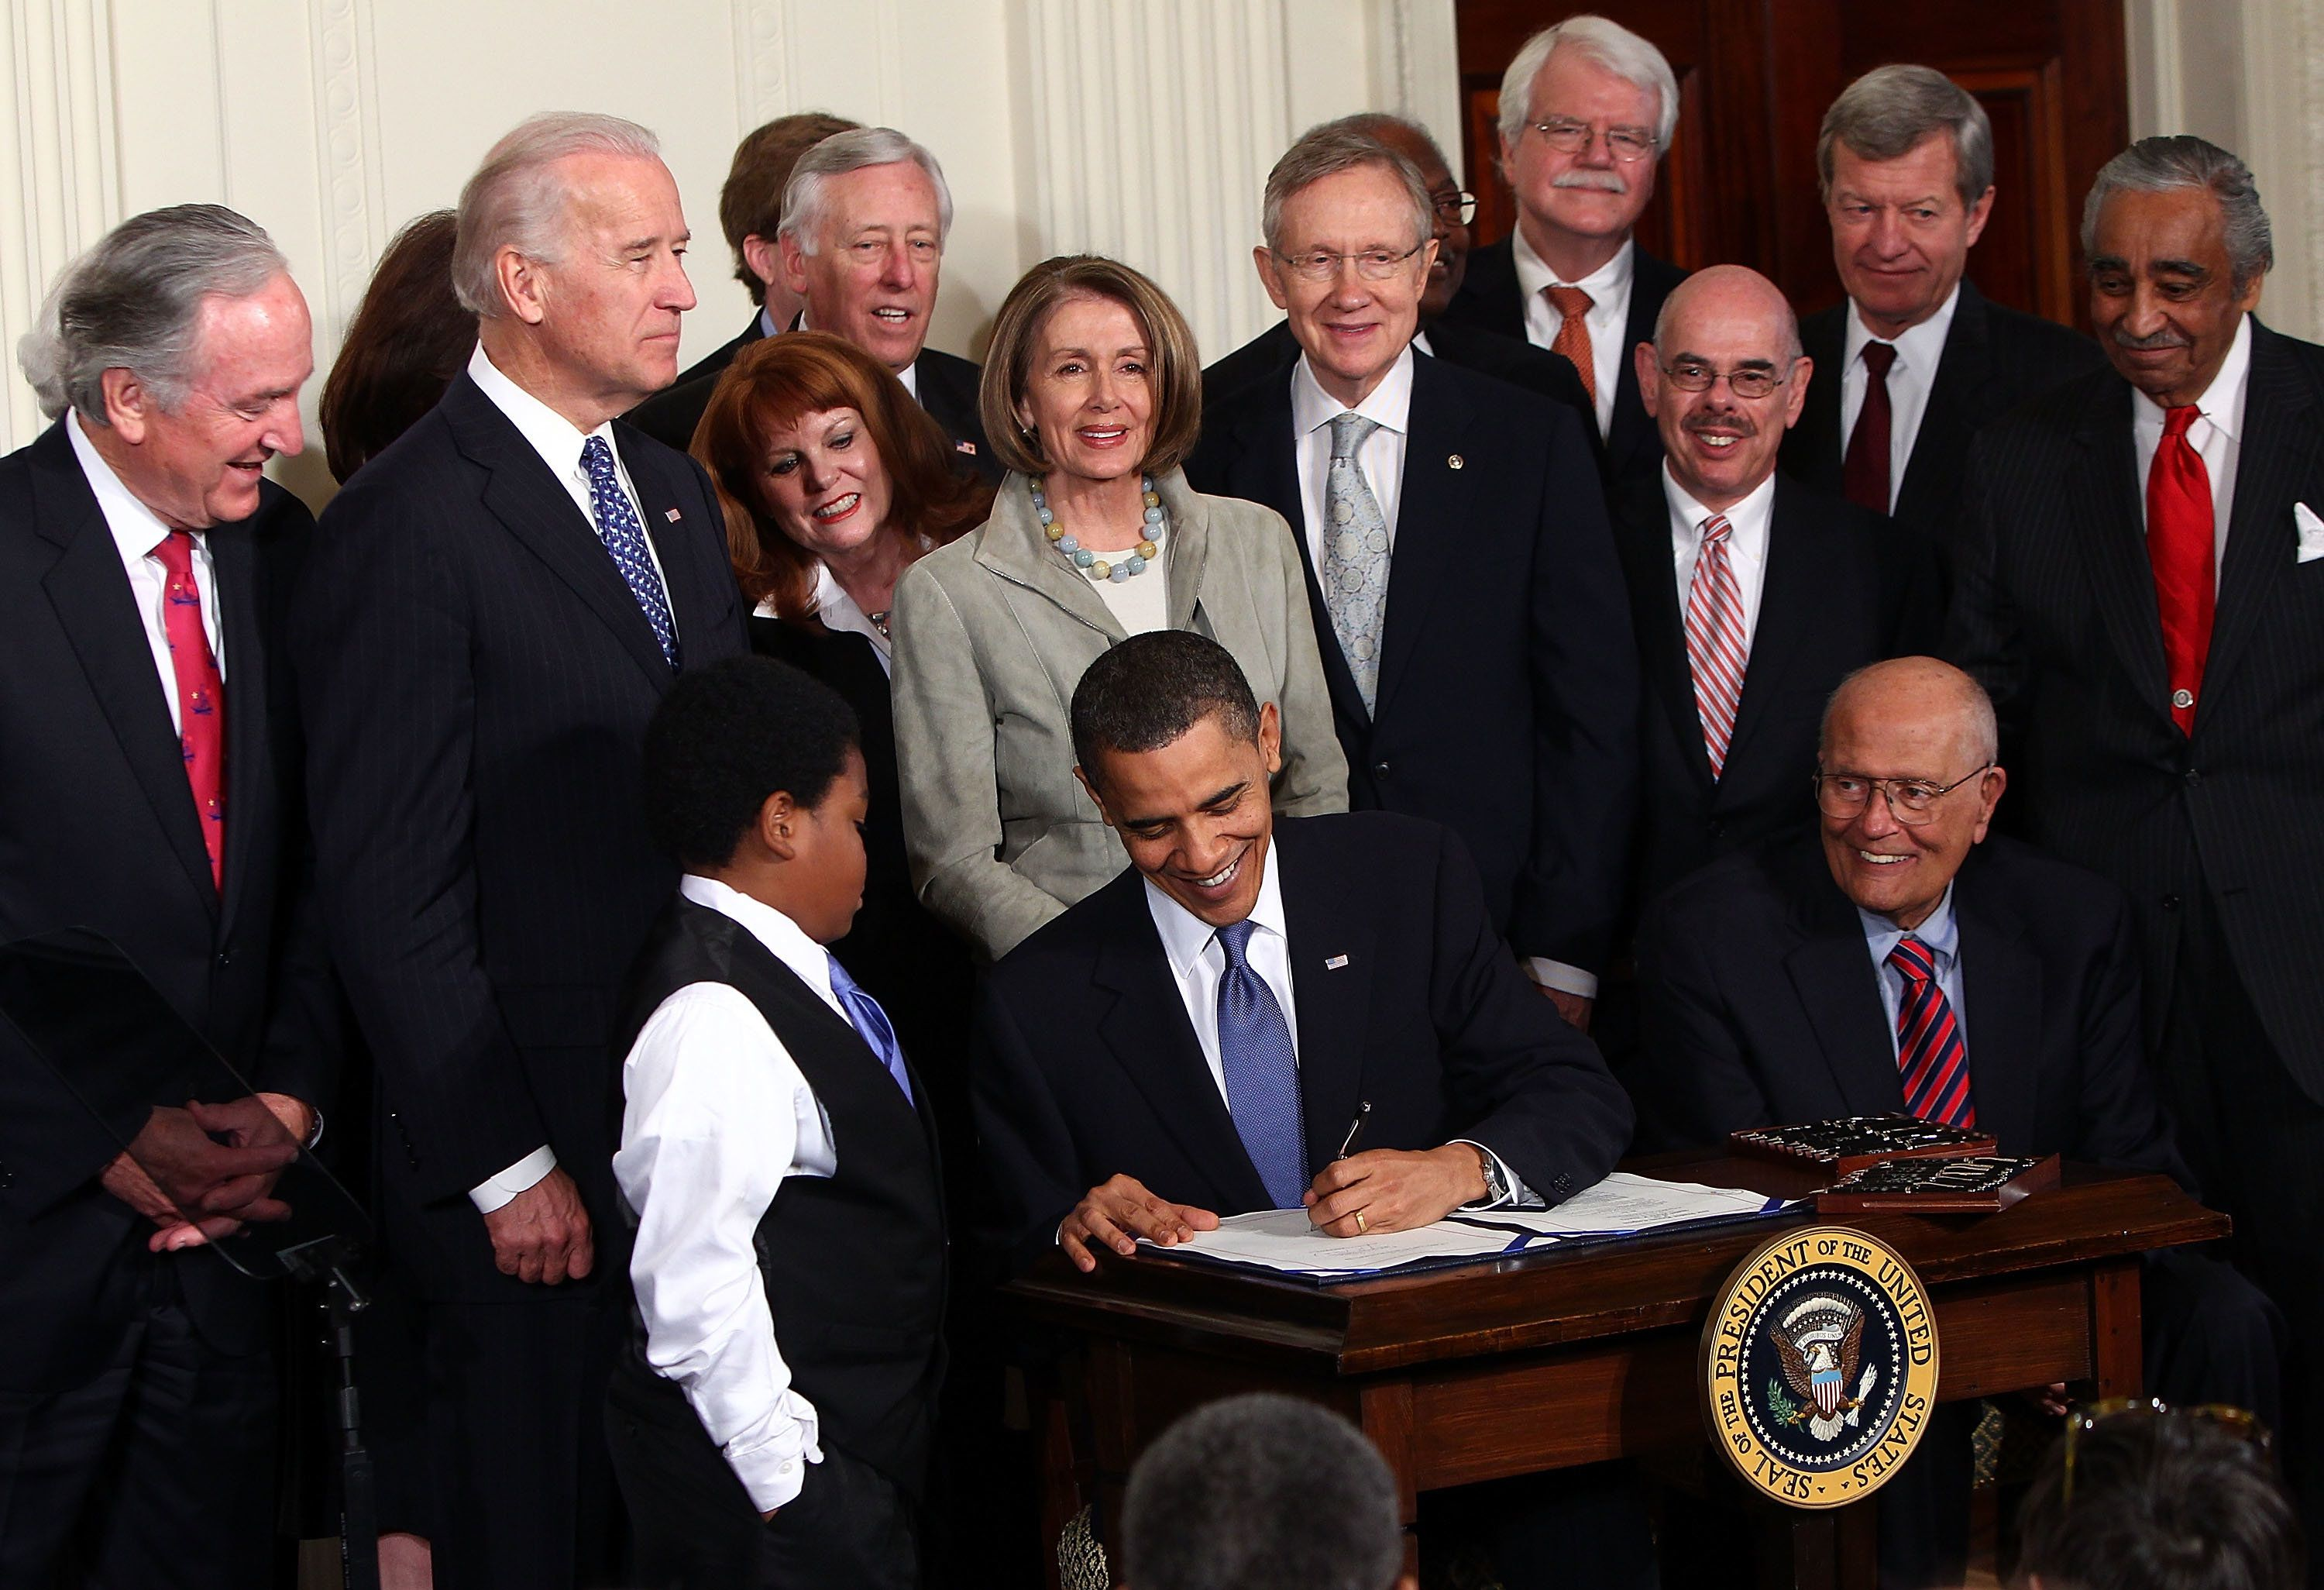 Obamacare Turns 9 Today, And Republicans Are Still Trying To Wreck It